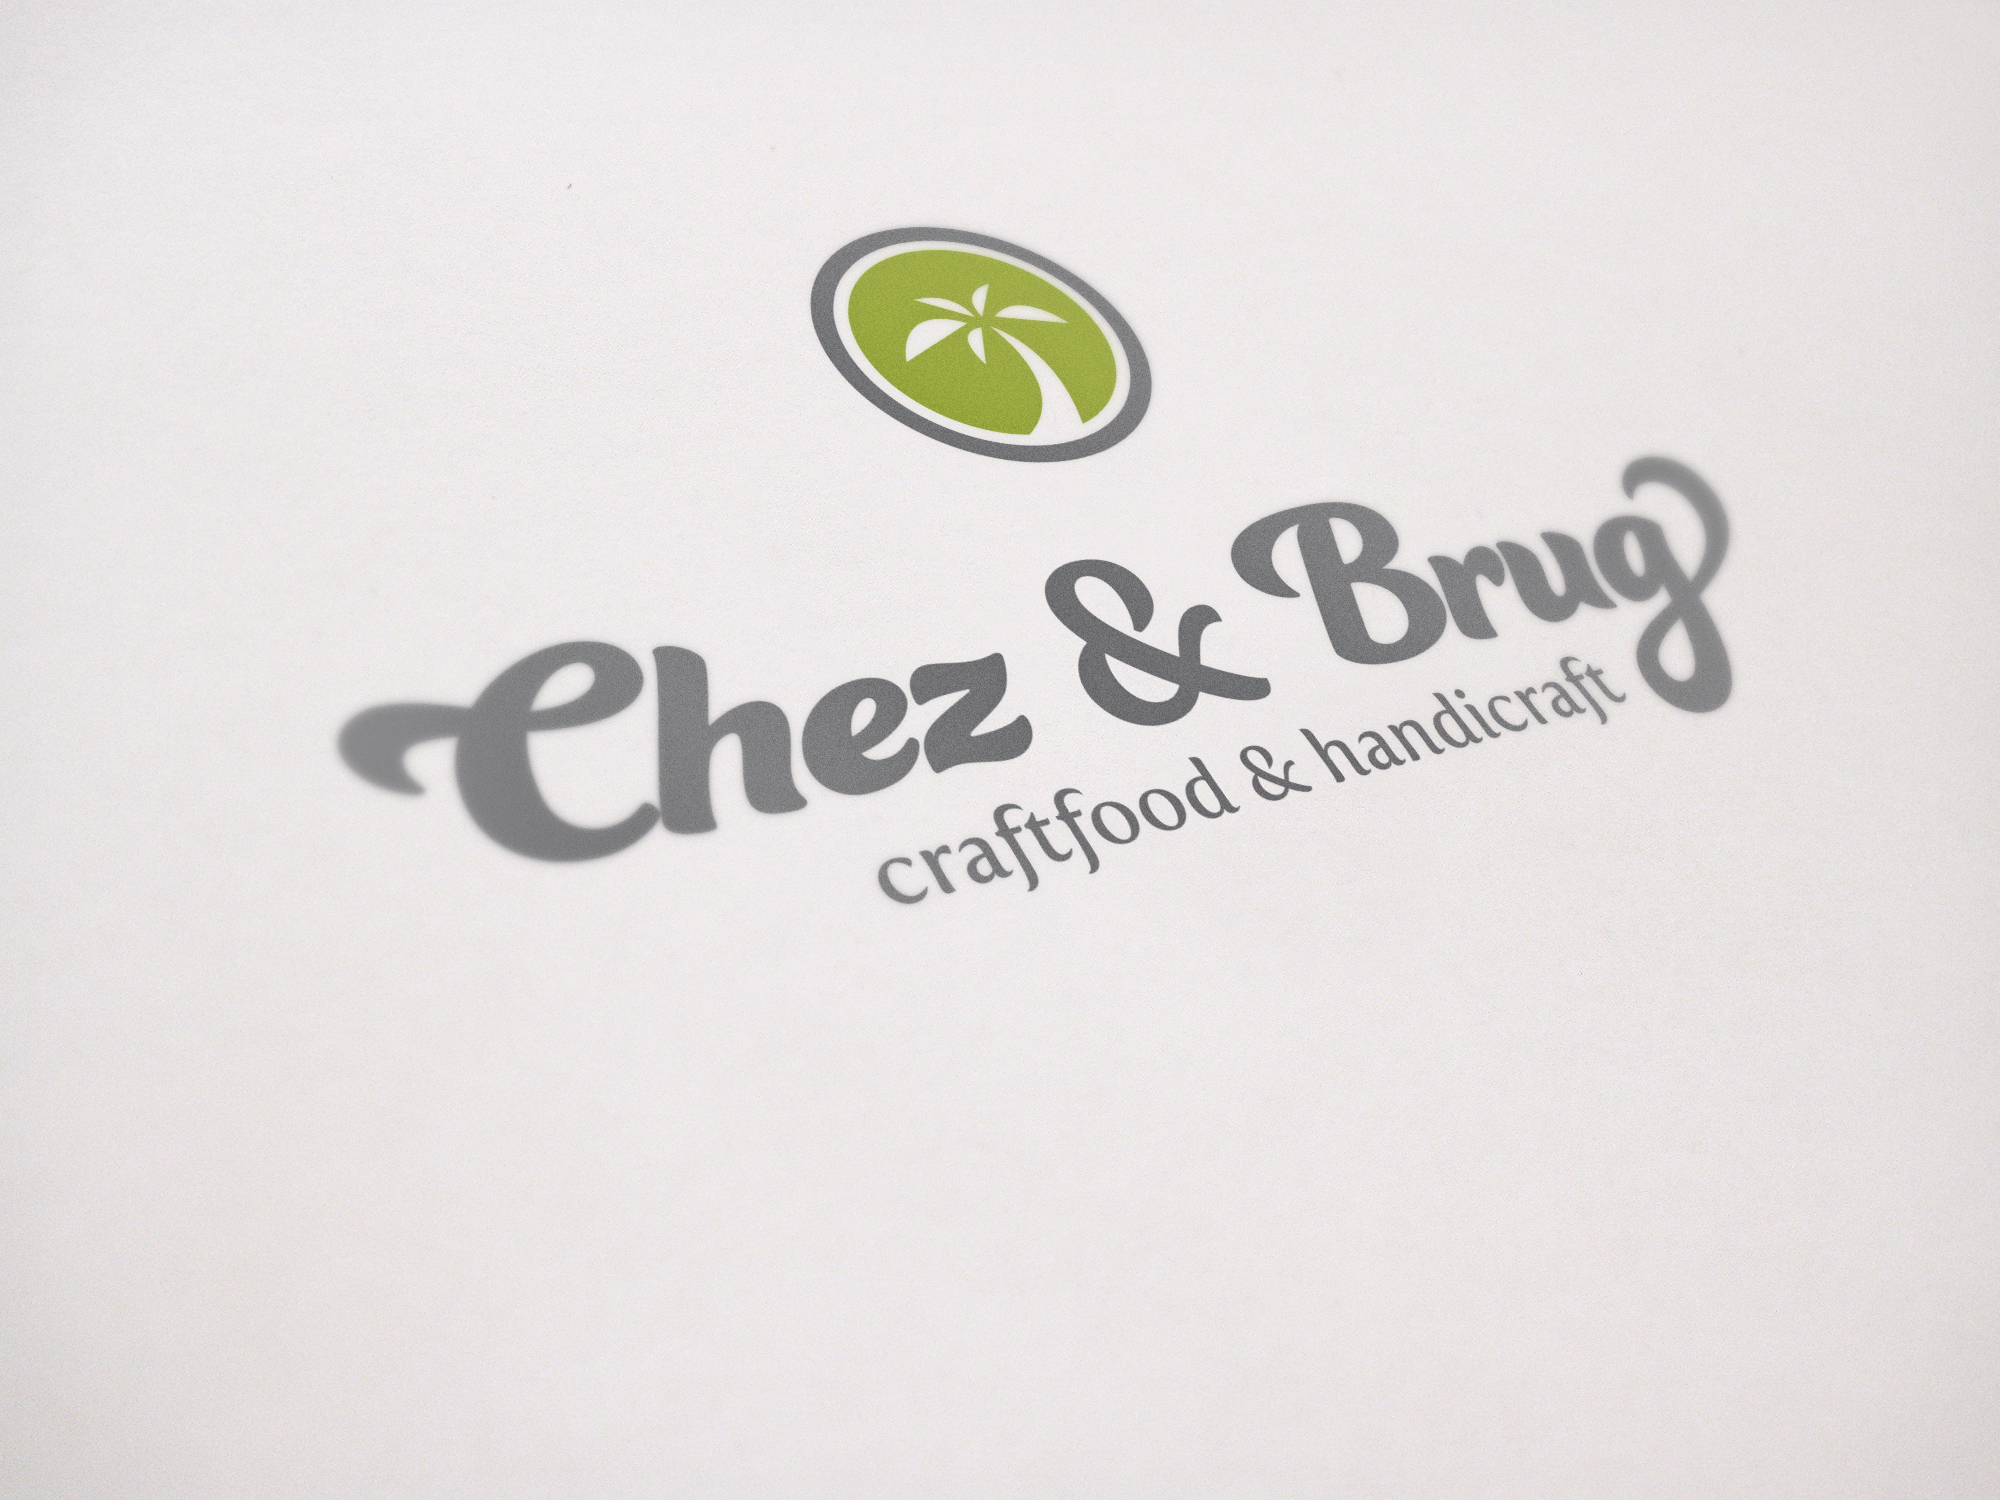 logo_chezandbrug_display_2.jpg